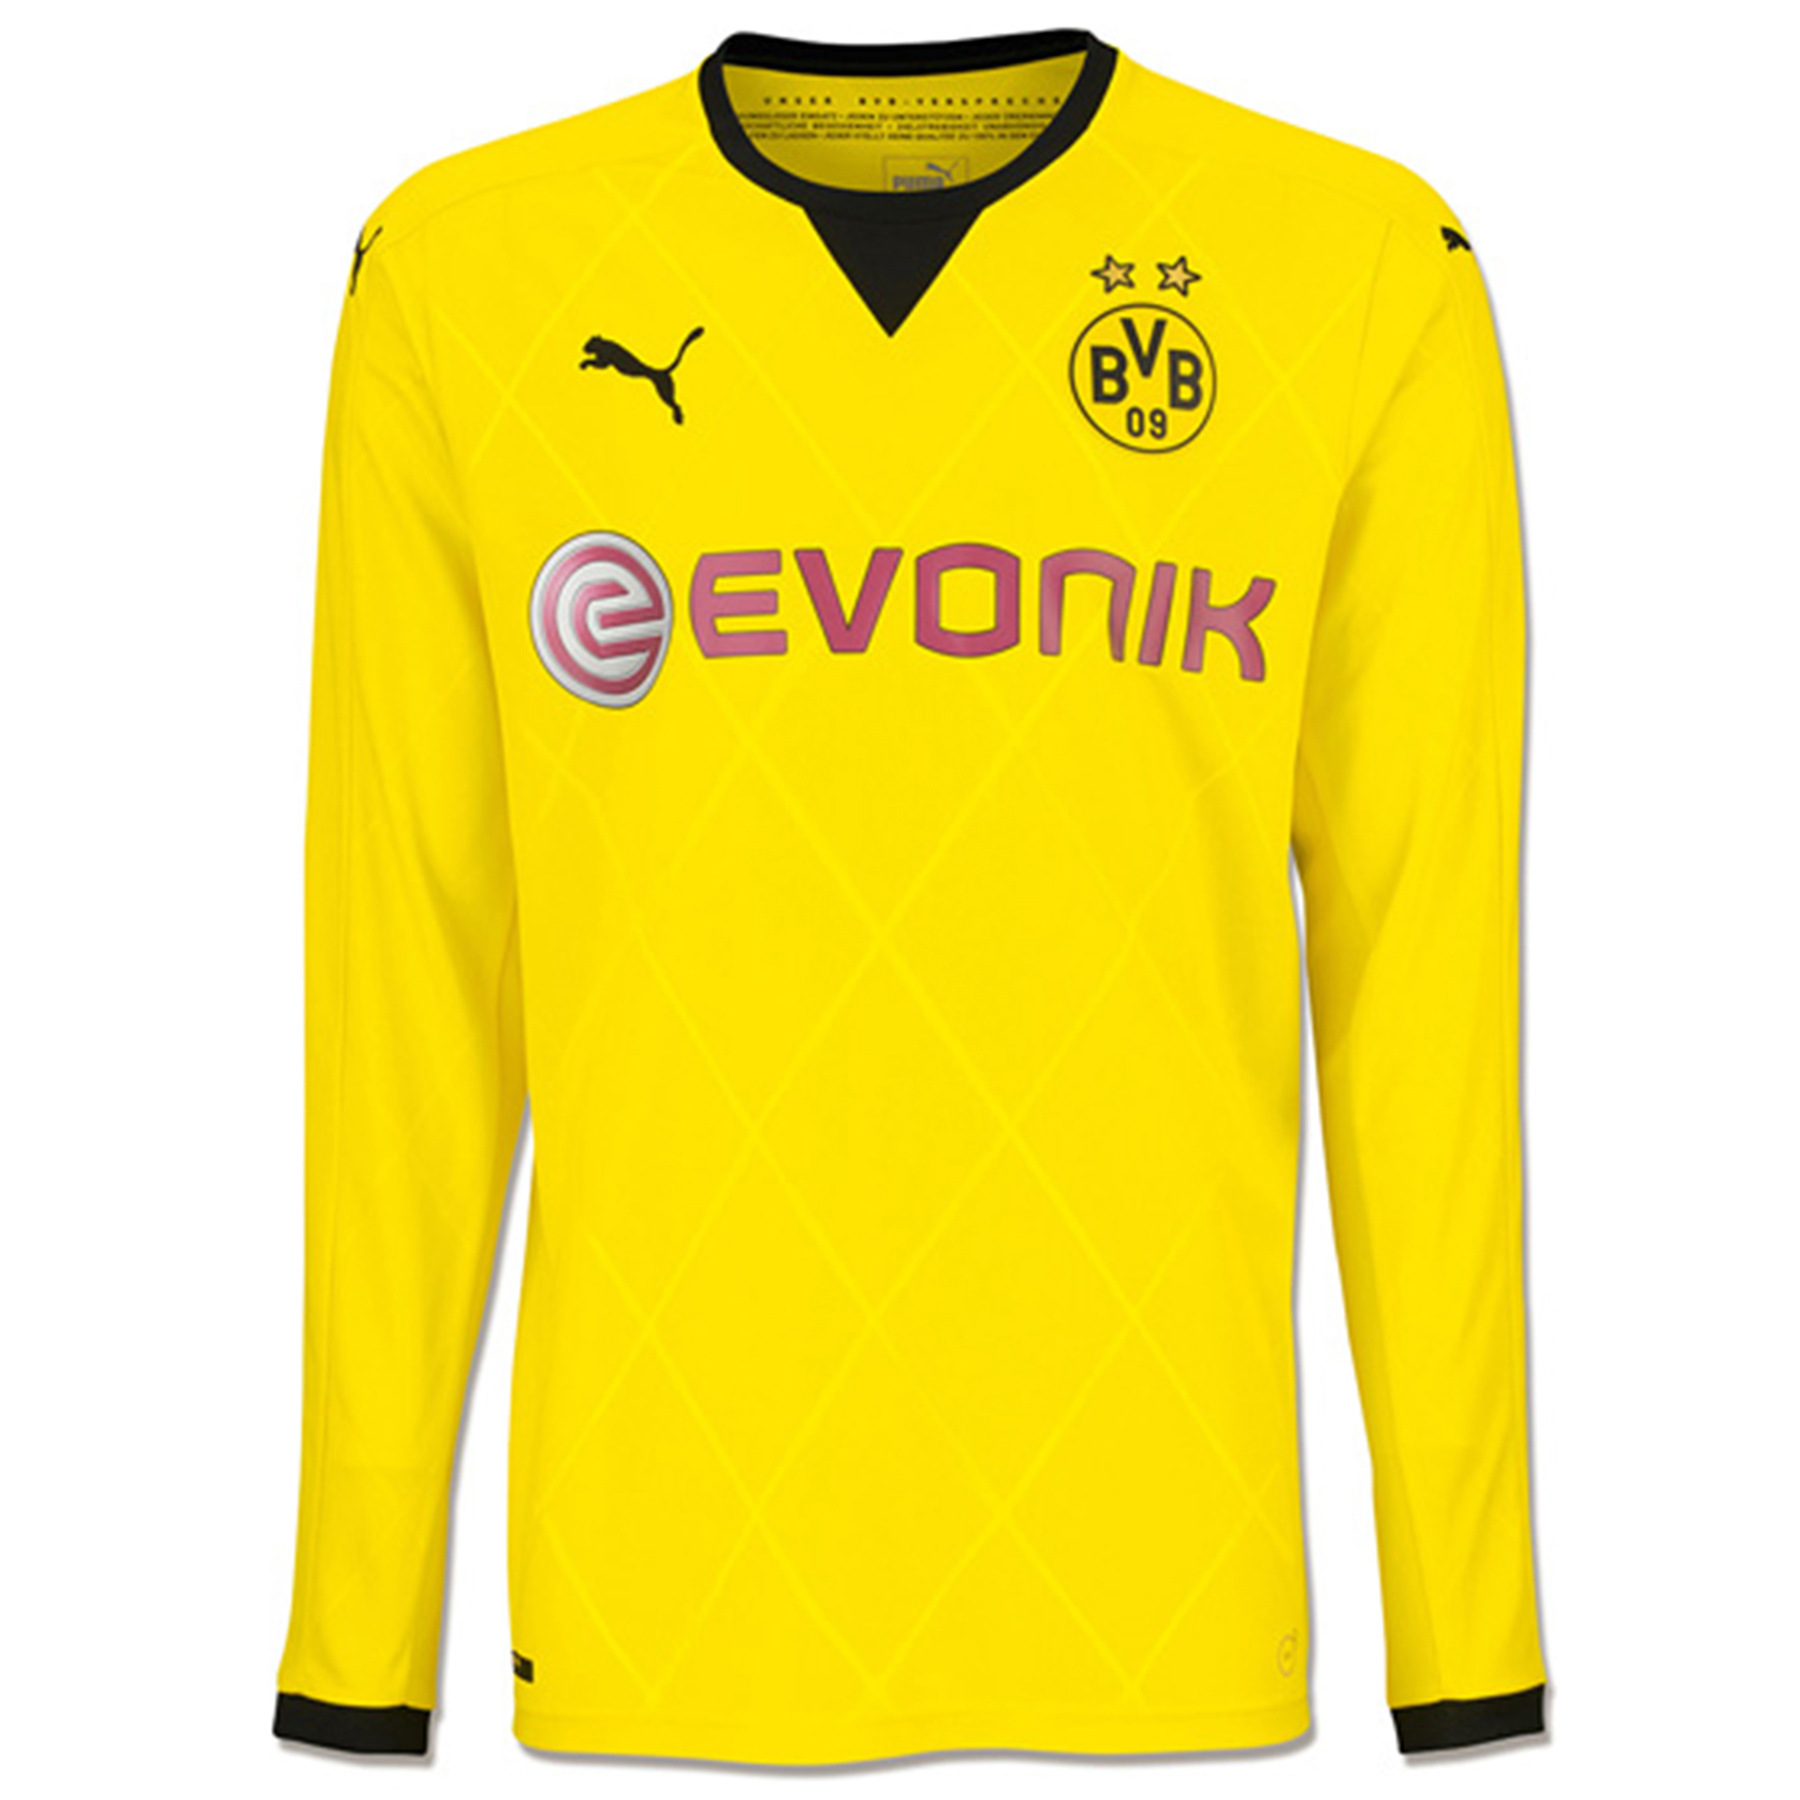 BVB Ambassador Home Shirt 2015/16 – Long Sleeve – Kids Yellow